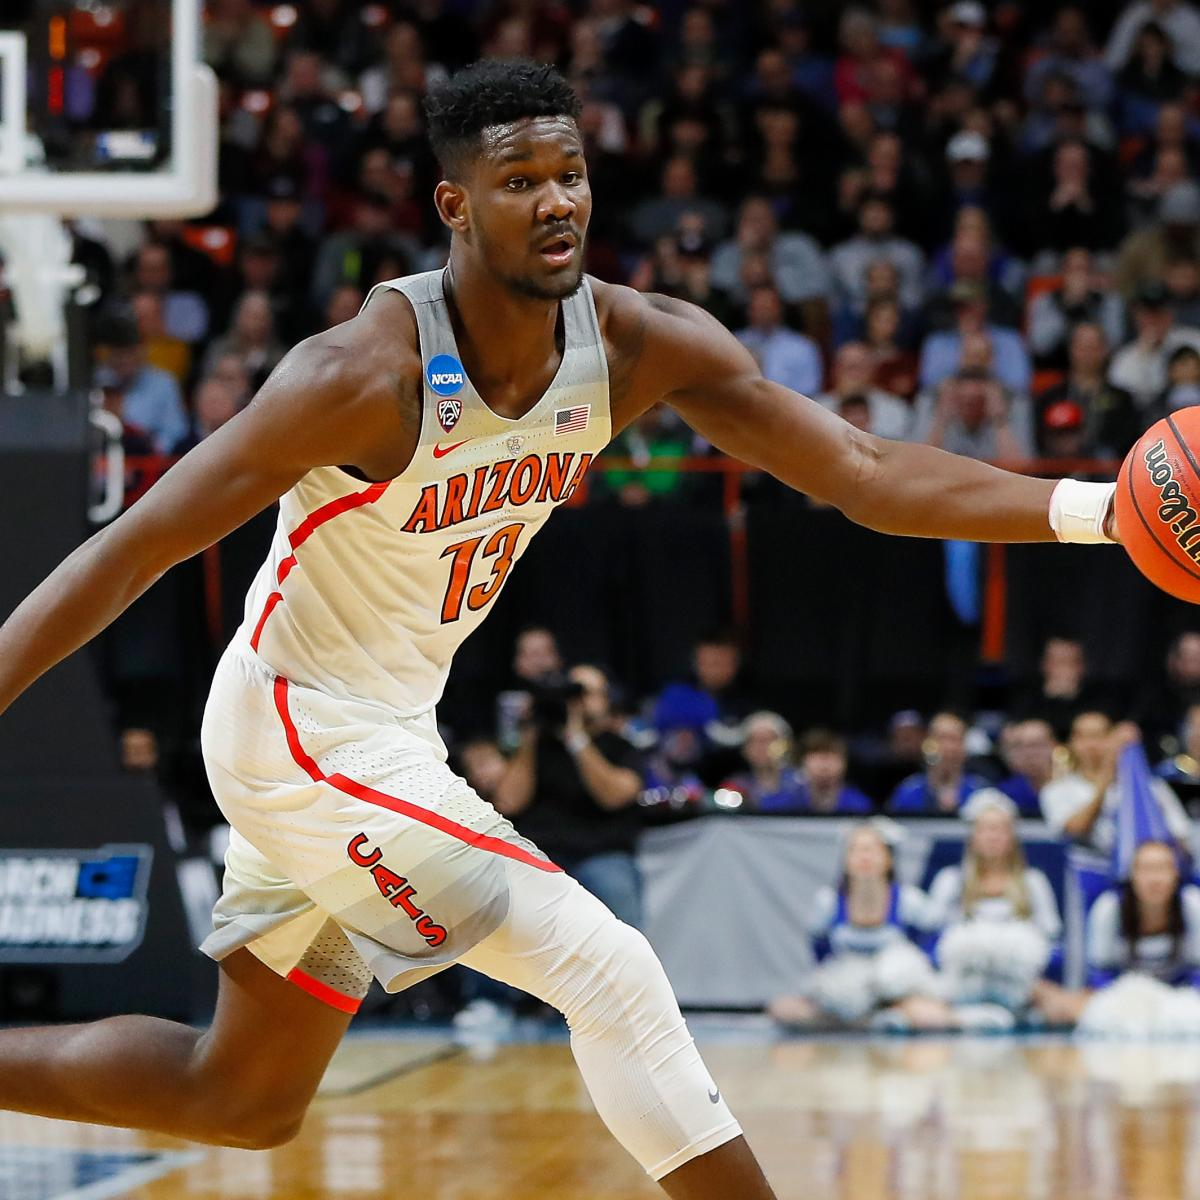 Pro Comparisons For Every Projected 2018 NBA Draft Lottery